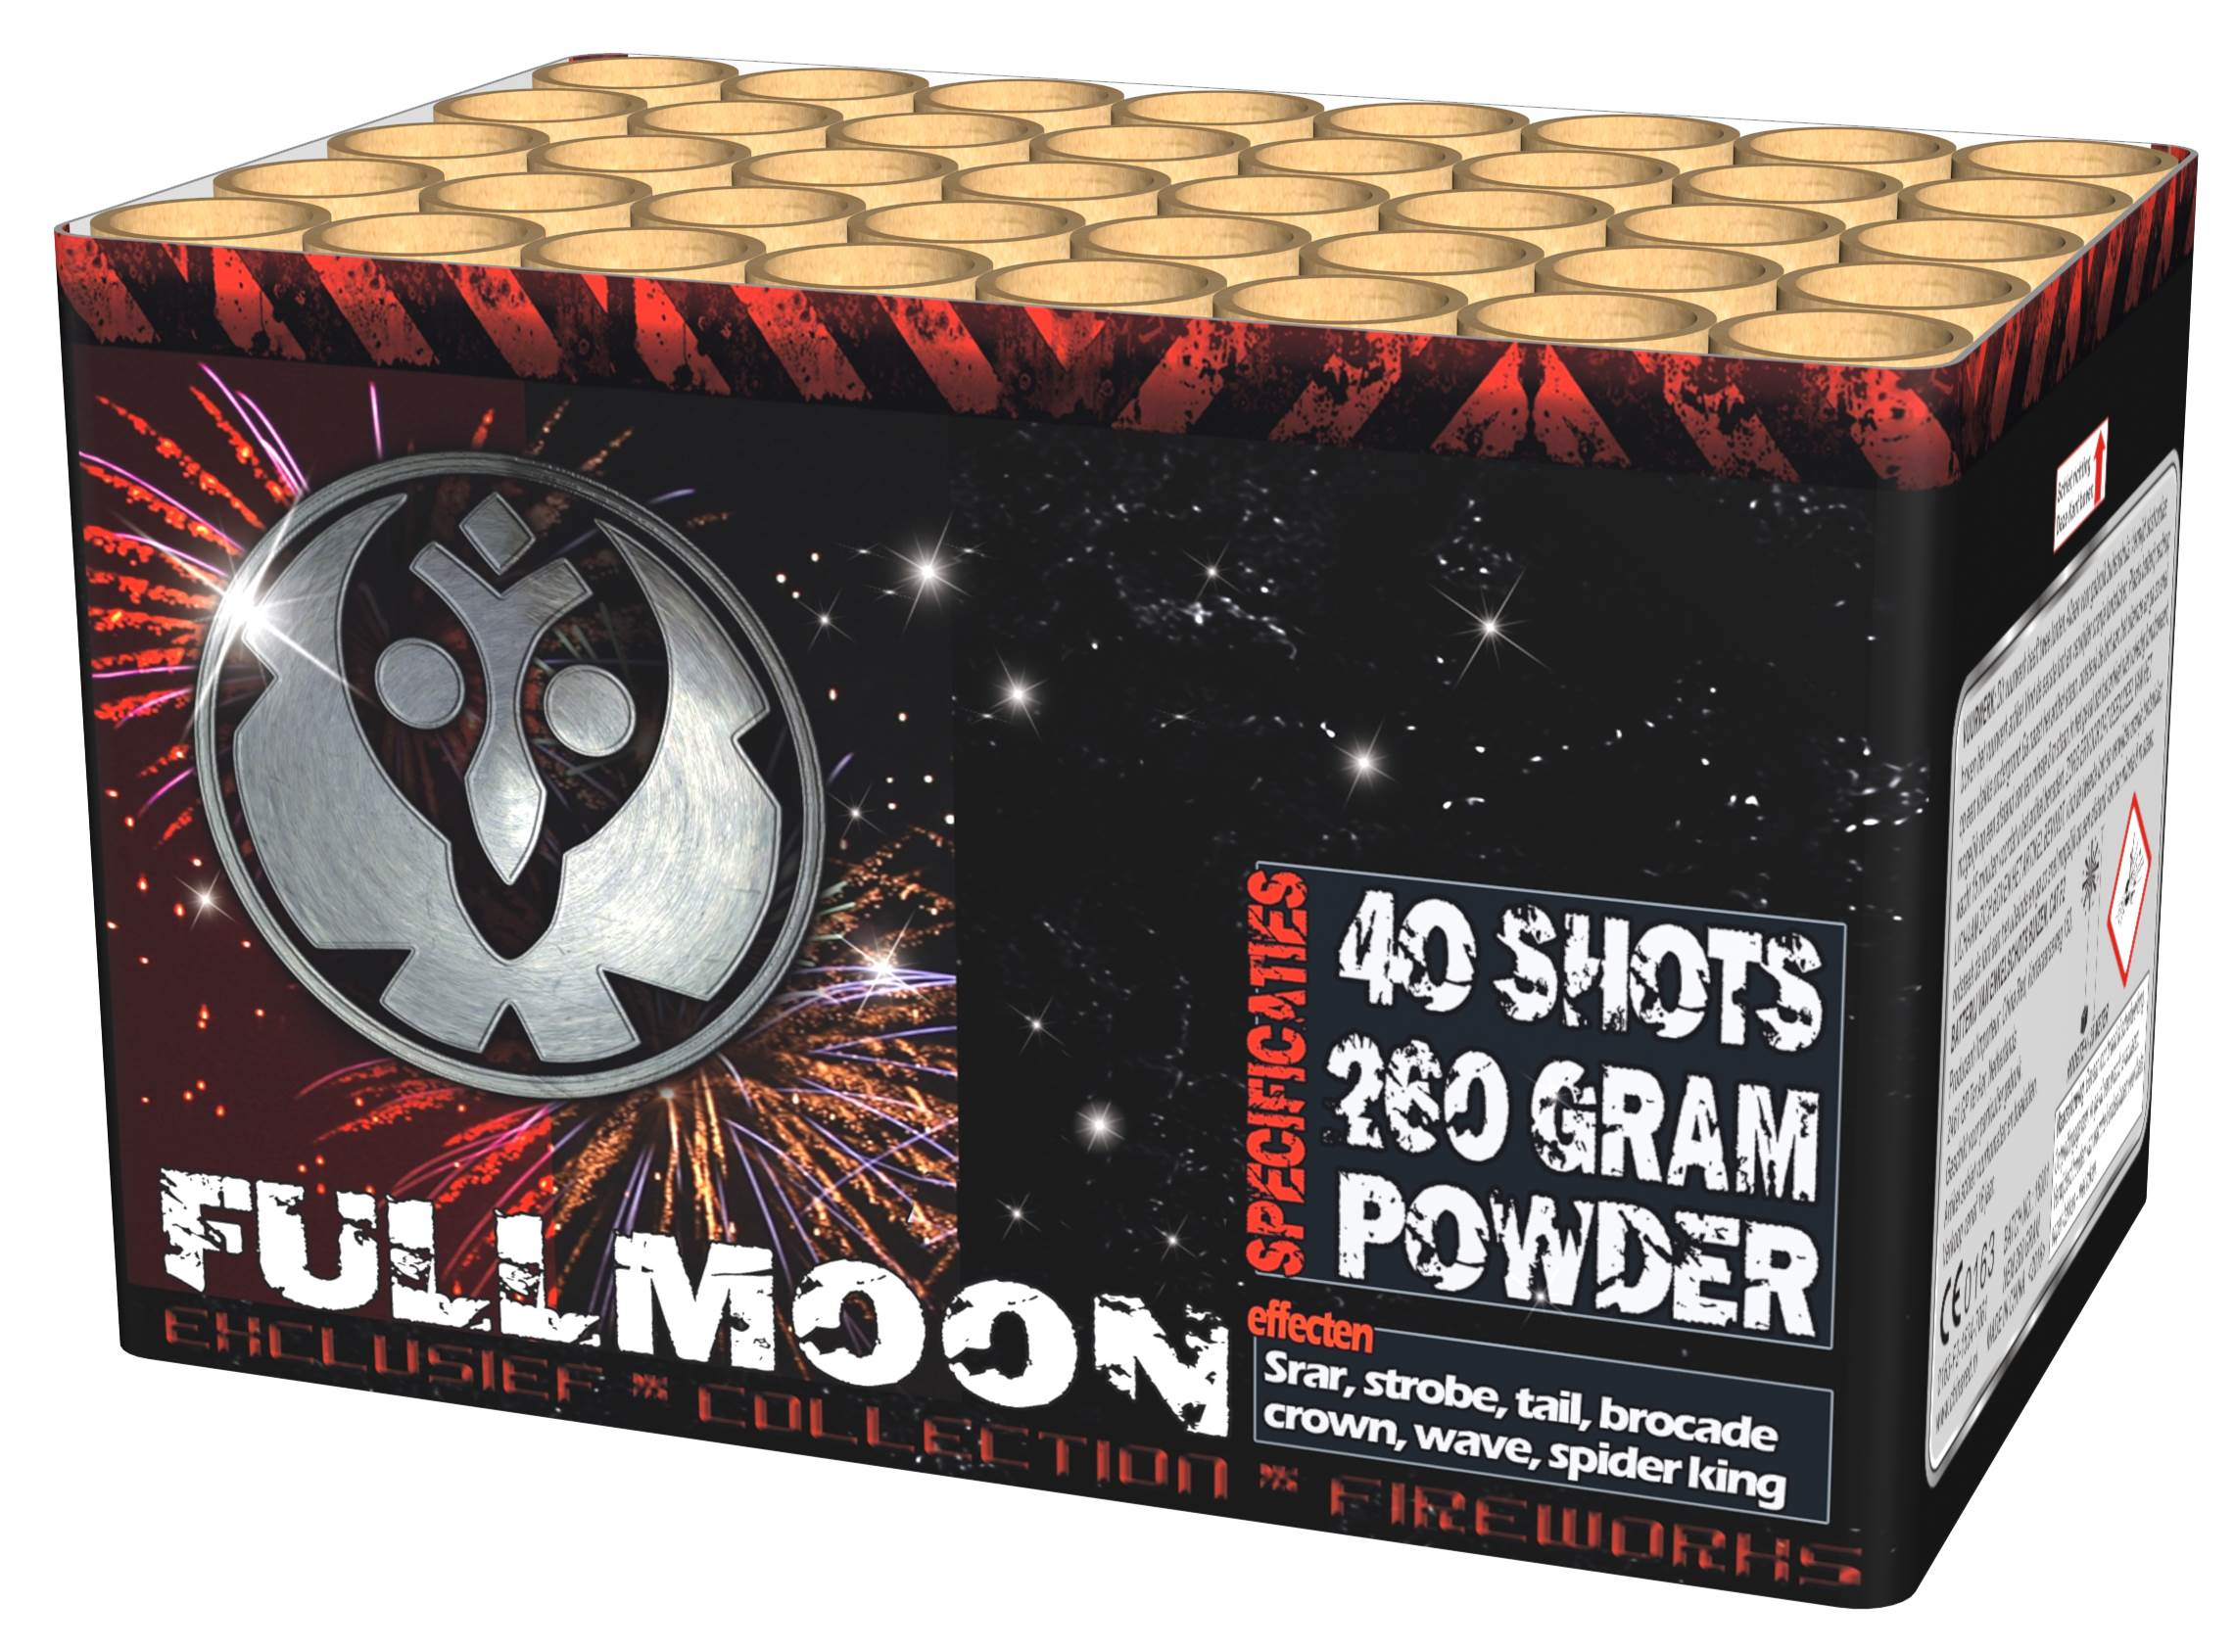 Full moon 40 shots top cake ky3720 china red intratuin for Intratuin lochem